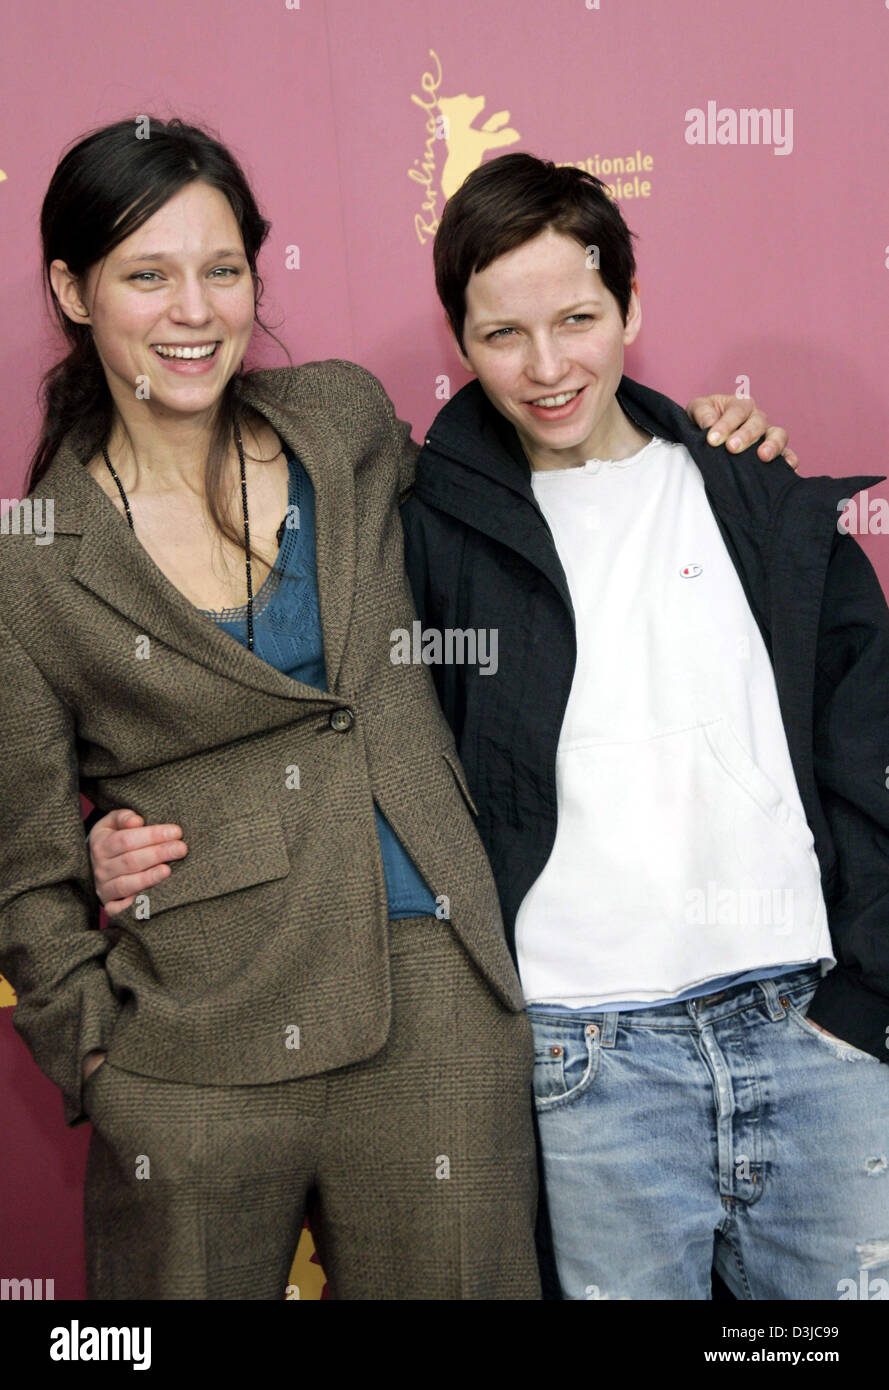 (dpa) - Actors Sabine Timoteo (L) and Julia Hummer embrace as they arrive at the press conference for their movie Stock Photo